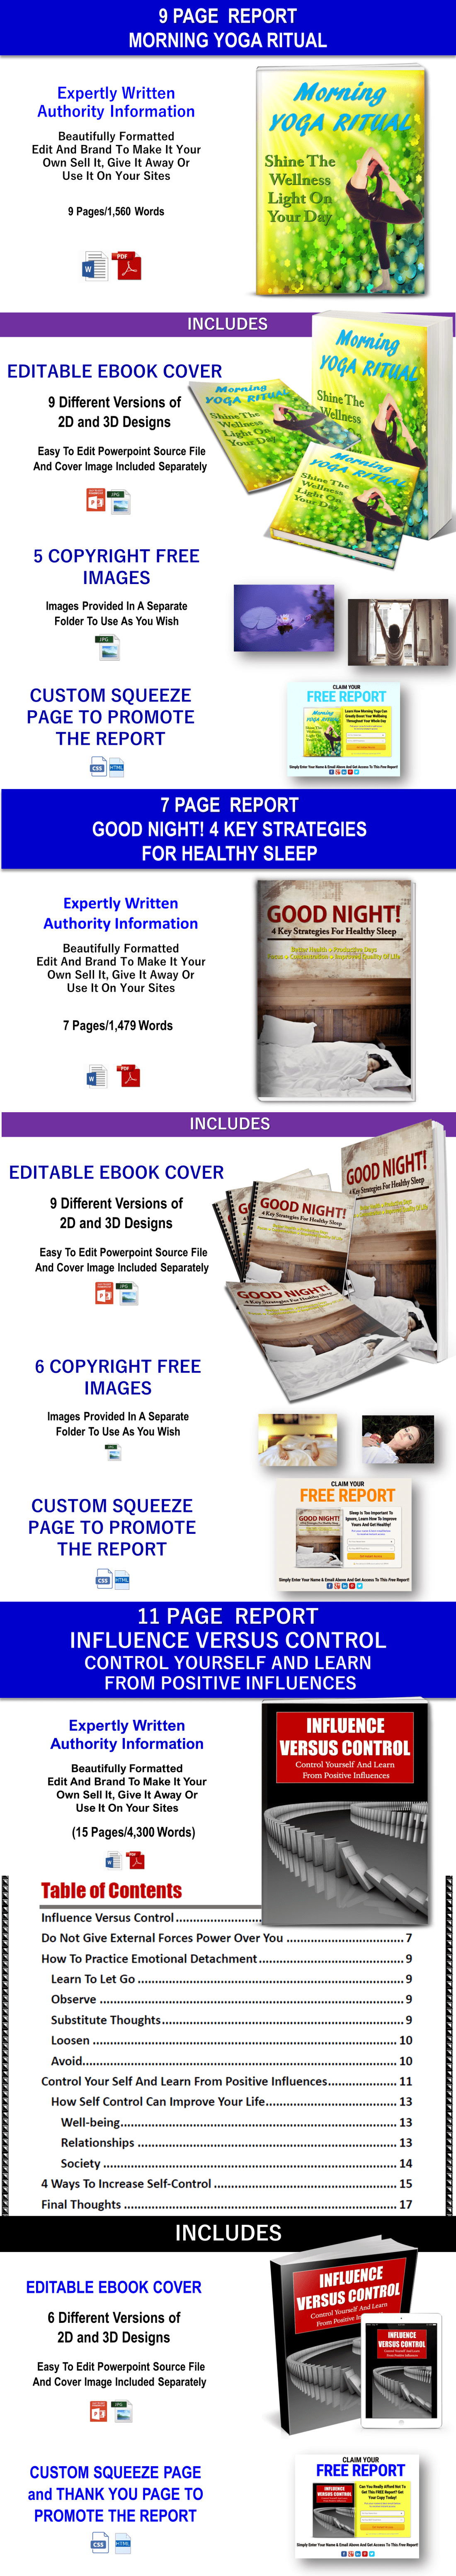 CONQUER INSECURITY Content With PLR Rights